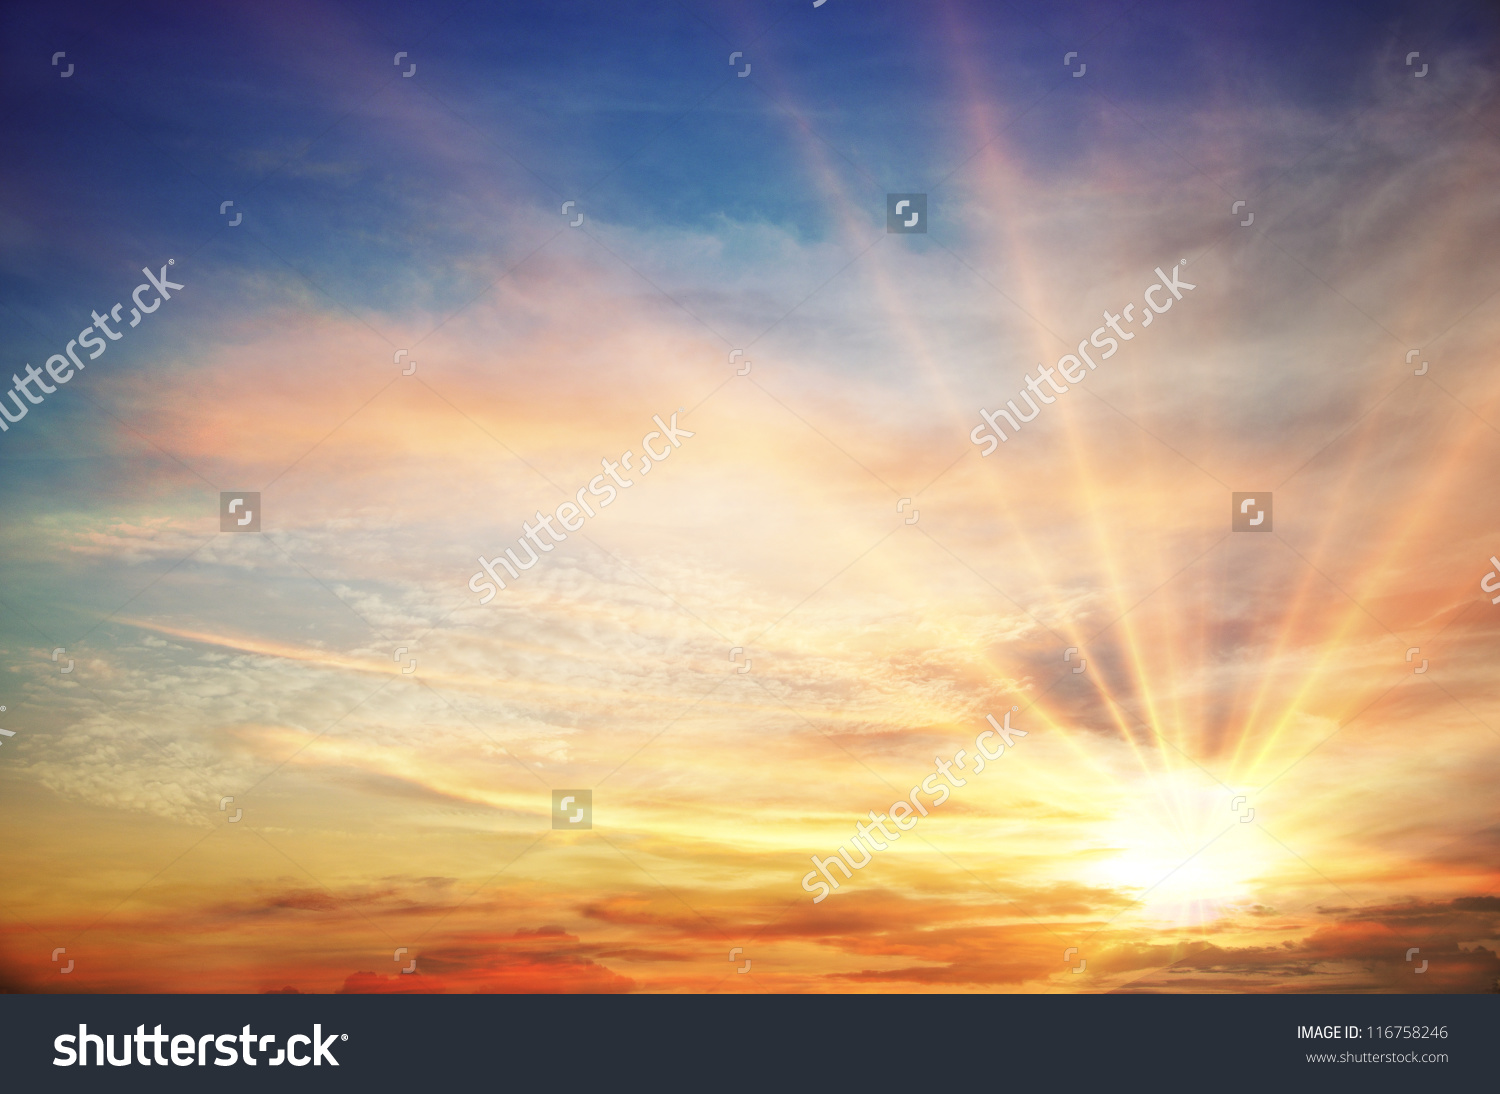 Sunset Sunrise Clouds Light Rays Other Stock Illustration.